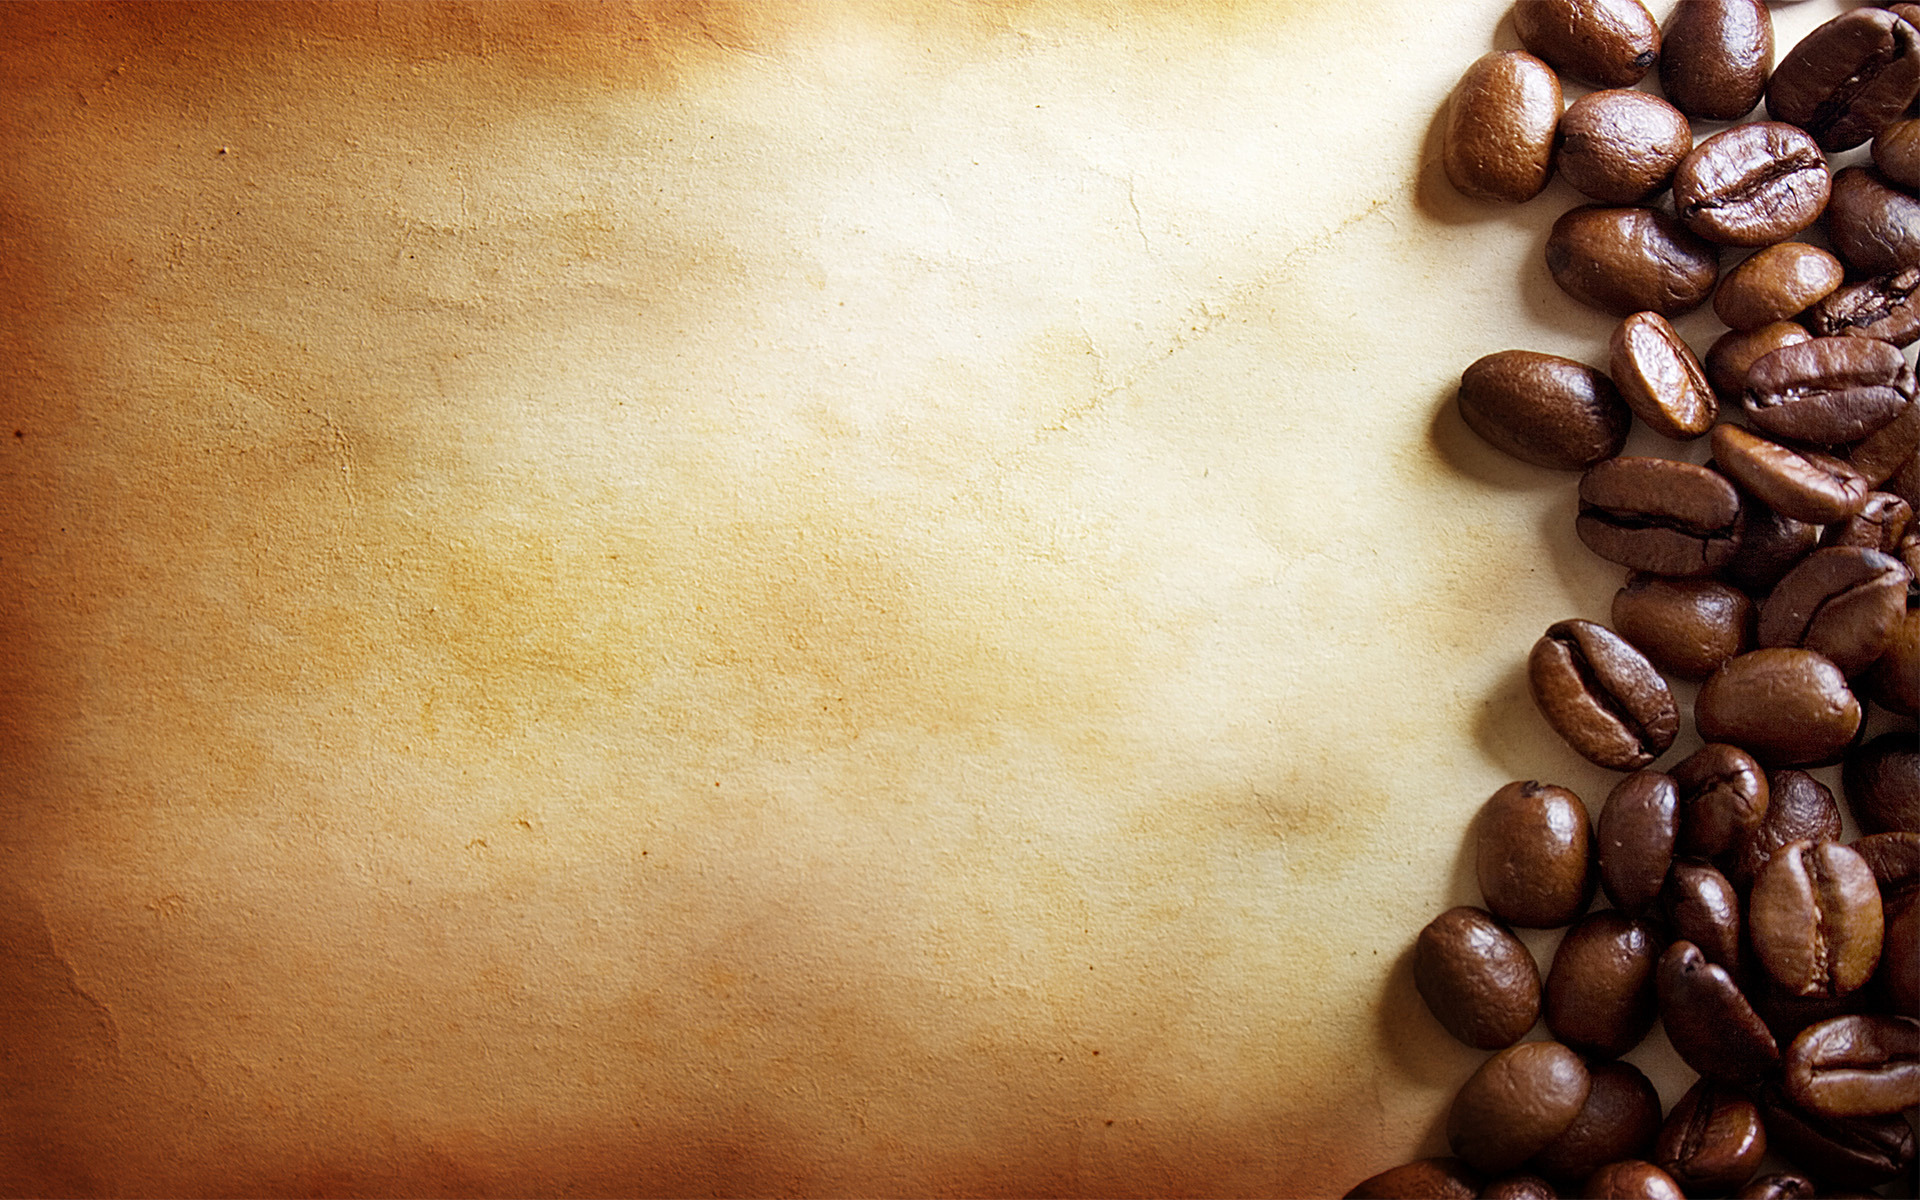 Coffee beans wallpapers and images Wallpaper